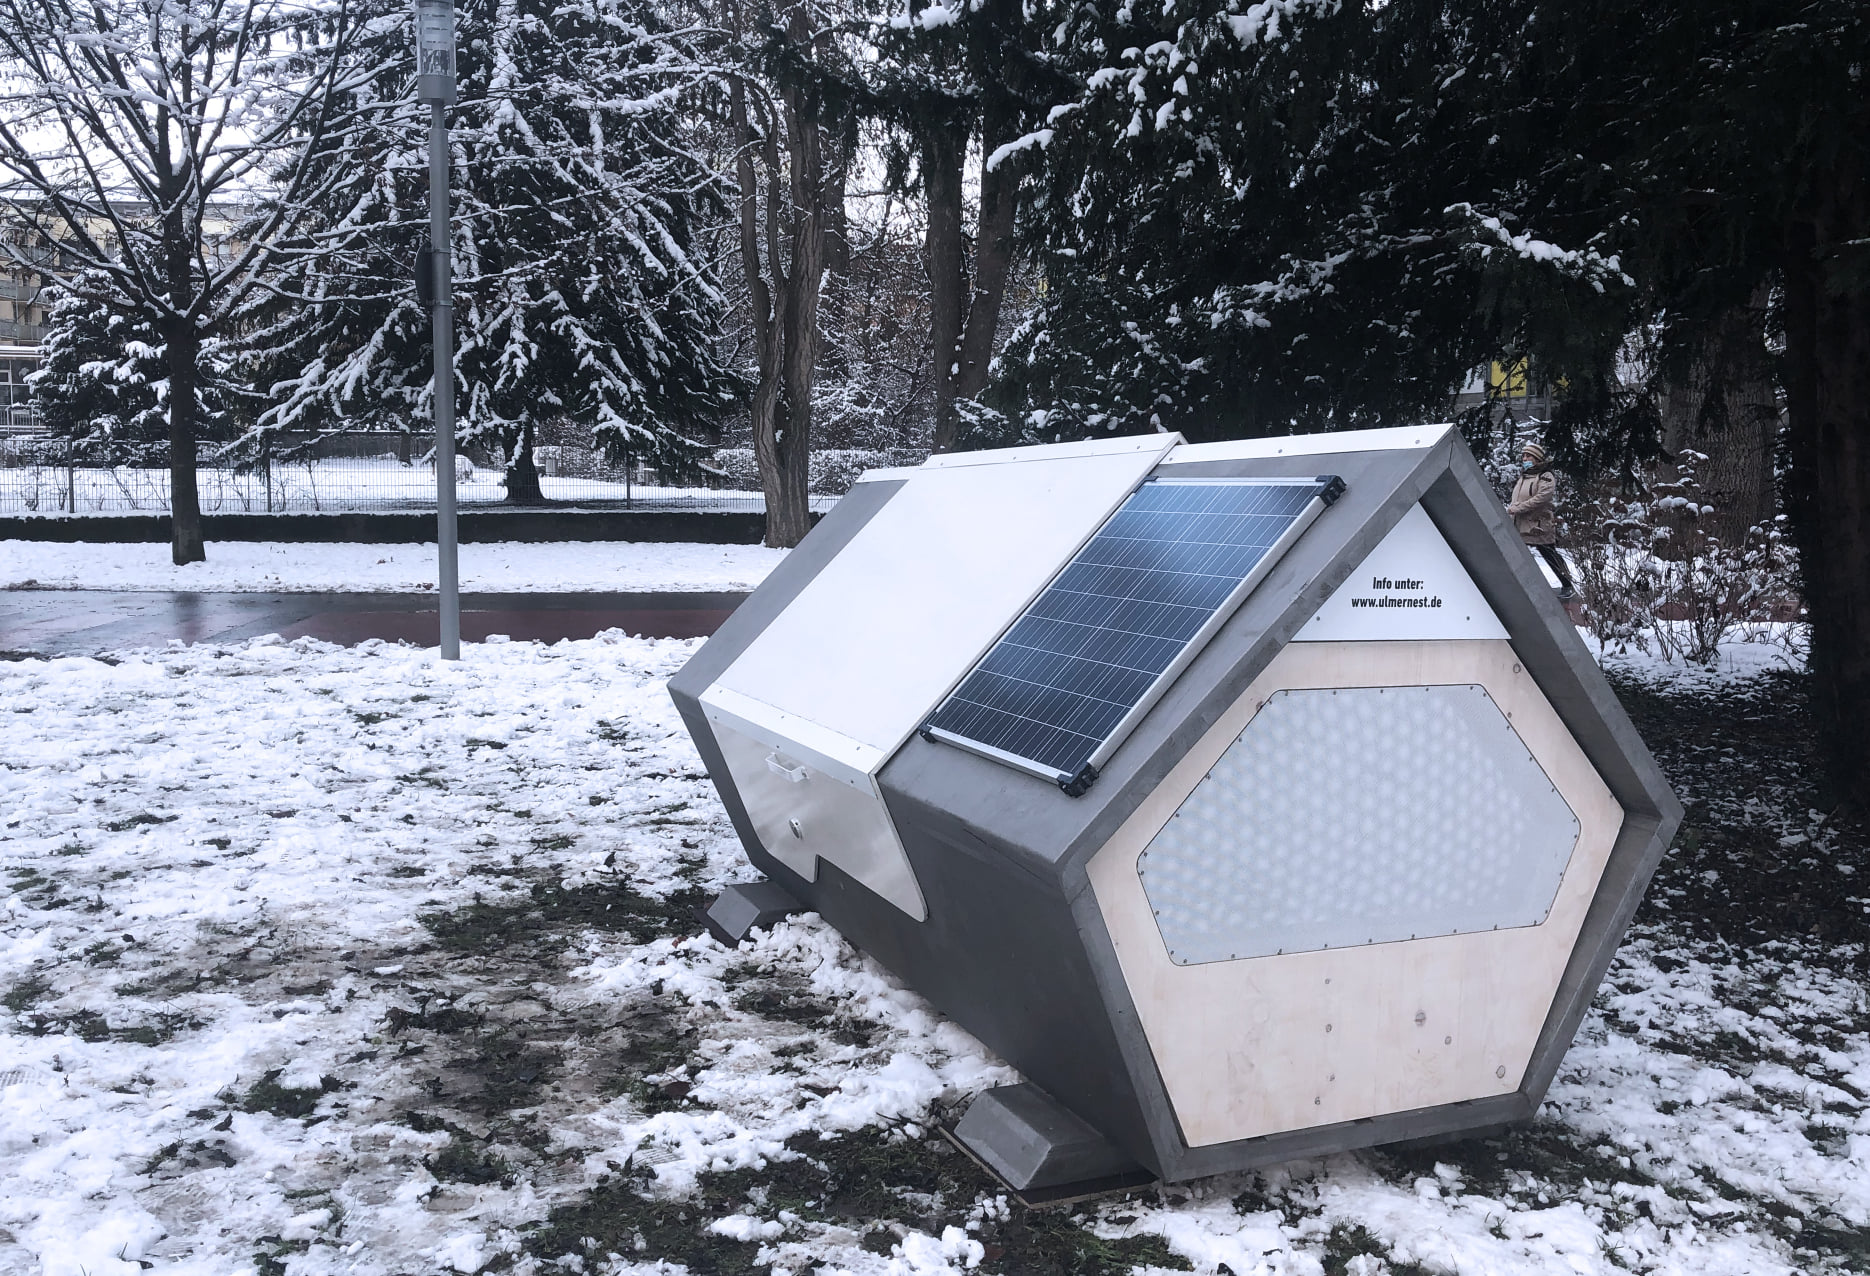 This German City Has Two Solar-Powered Capsules To Help Homeless People Stay Warm